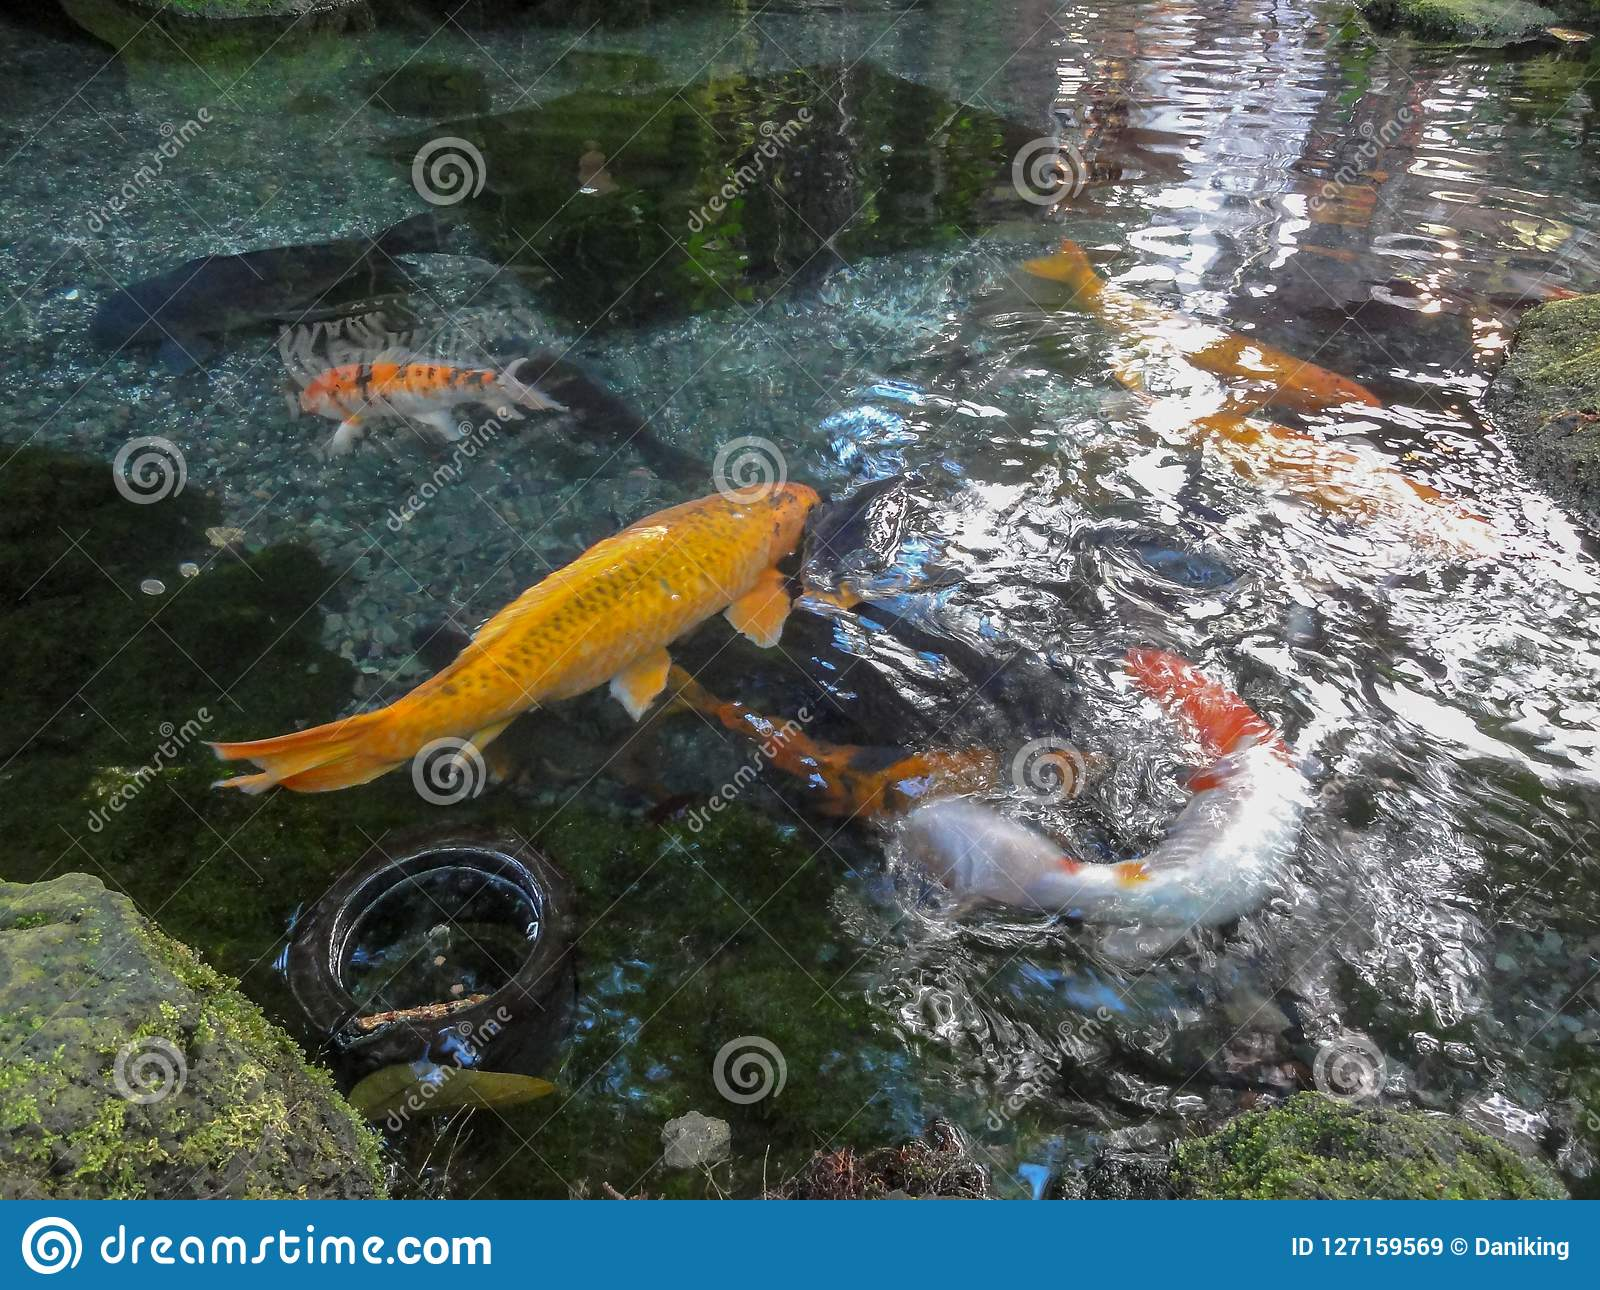 Swimming Coy in Pond